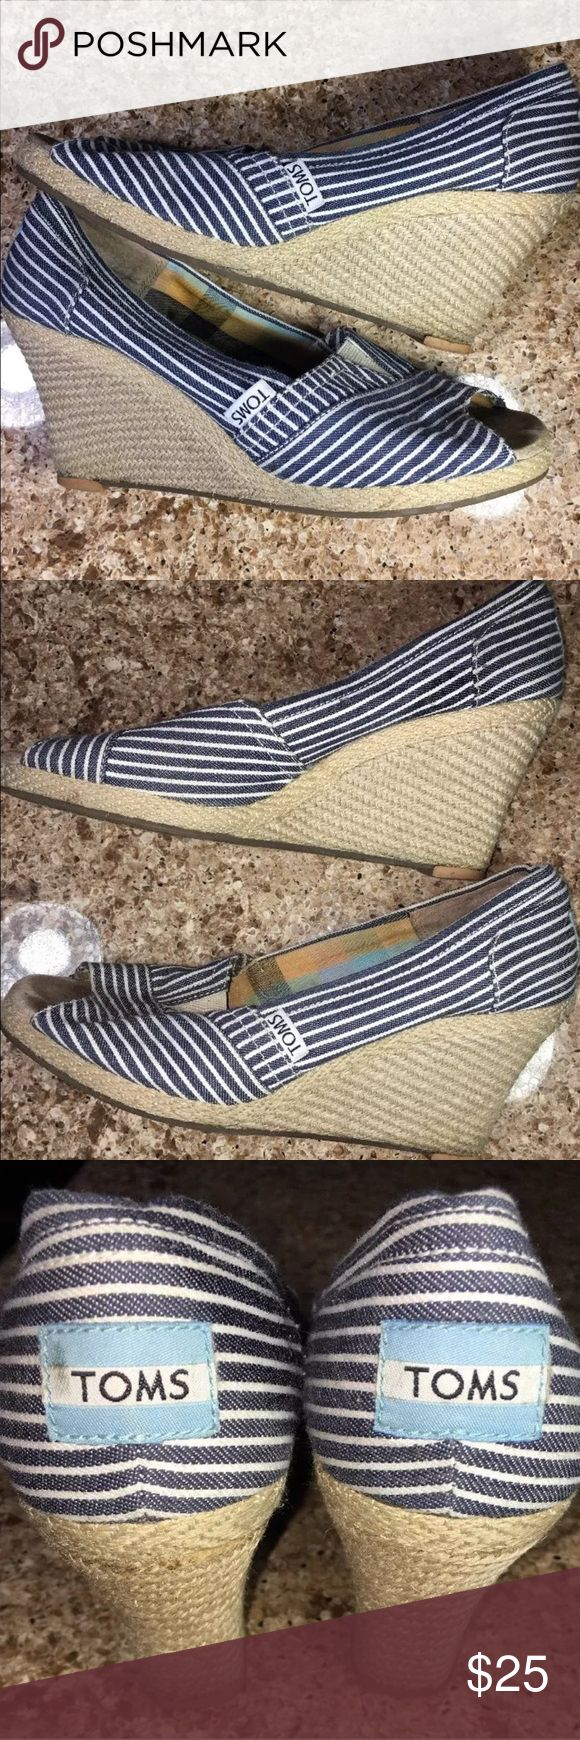 Toms Striped Wedge Heel Blue and White 7.5 Preowned Toms Striped Wedge Heel Size 7.5. In good condition had some minor scuff as seen on pictures. Please check photo before buying. Feel free to ask any questions. Thank you for viewing TOMS Shoes Wedges